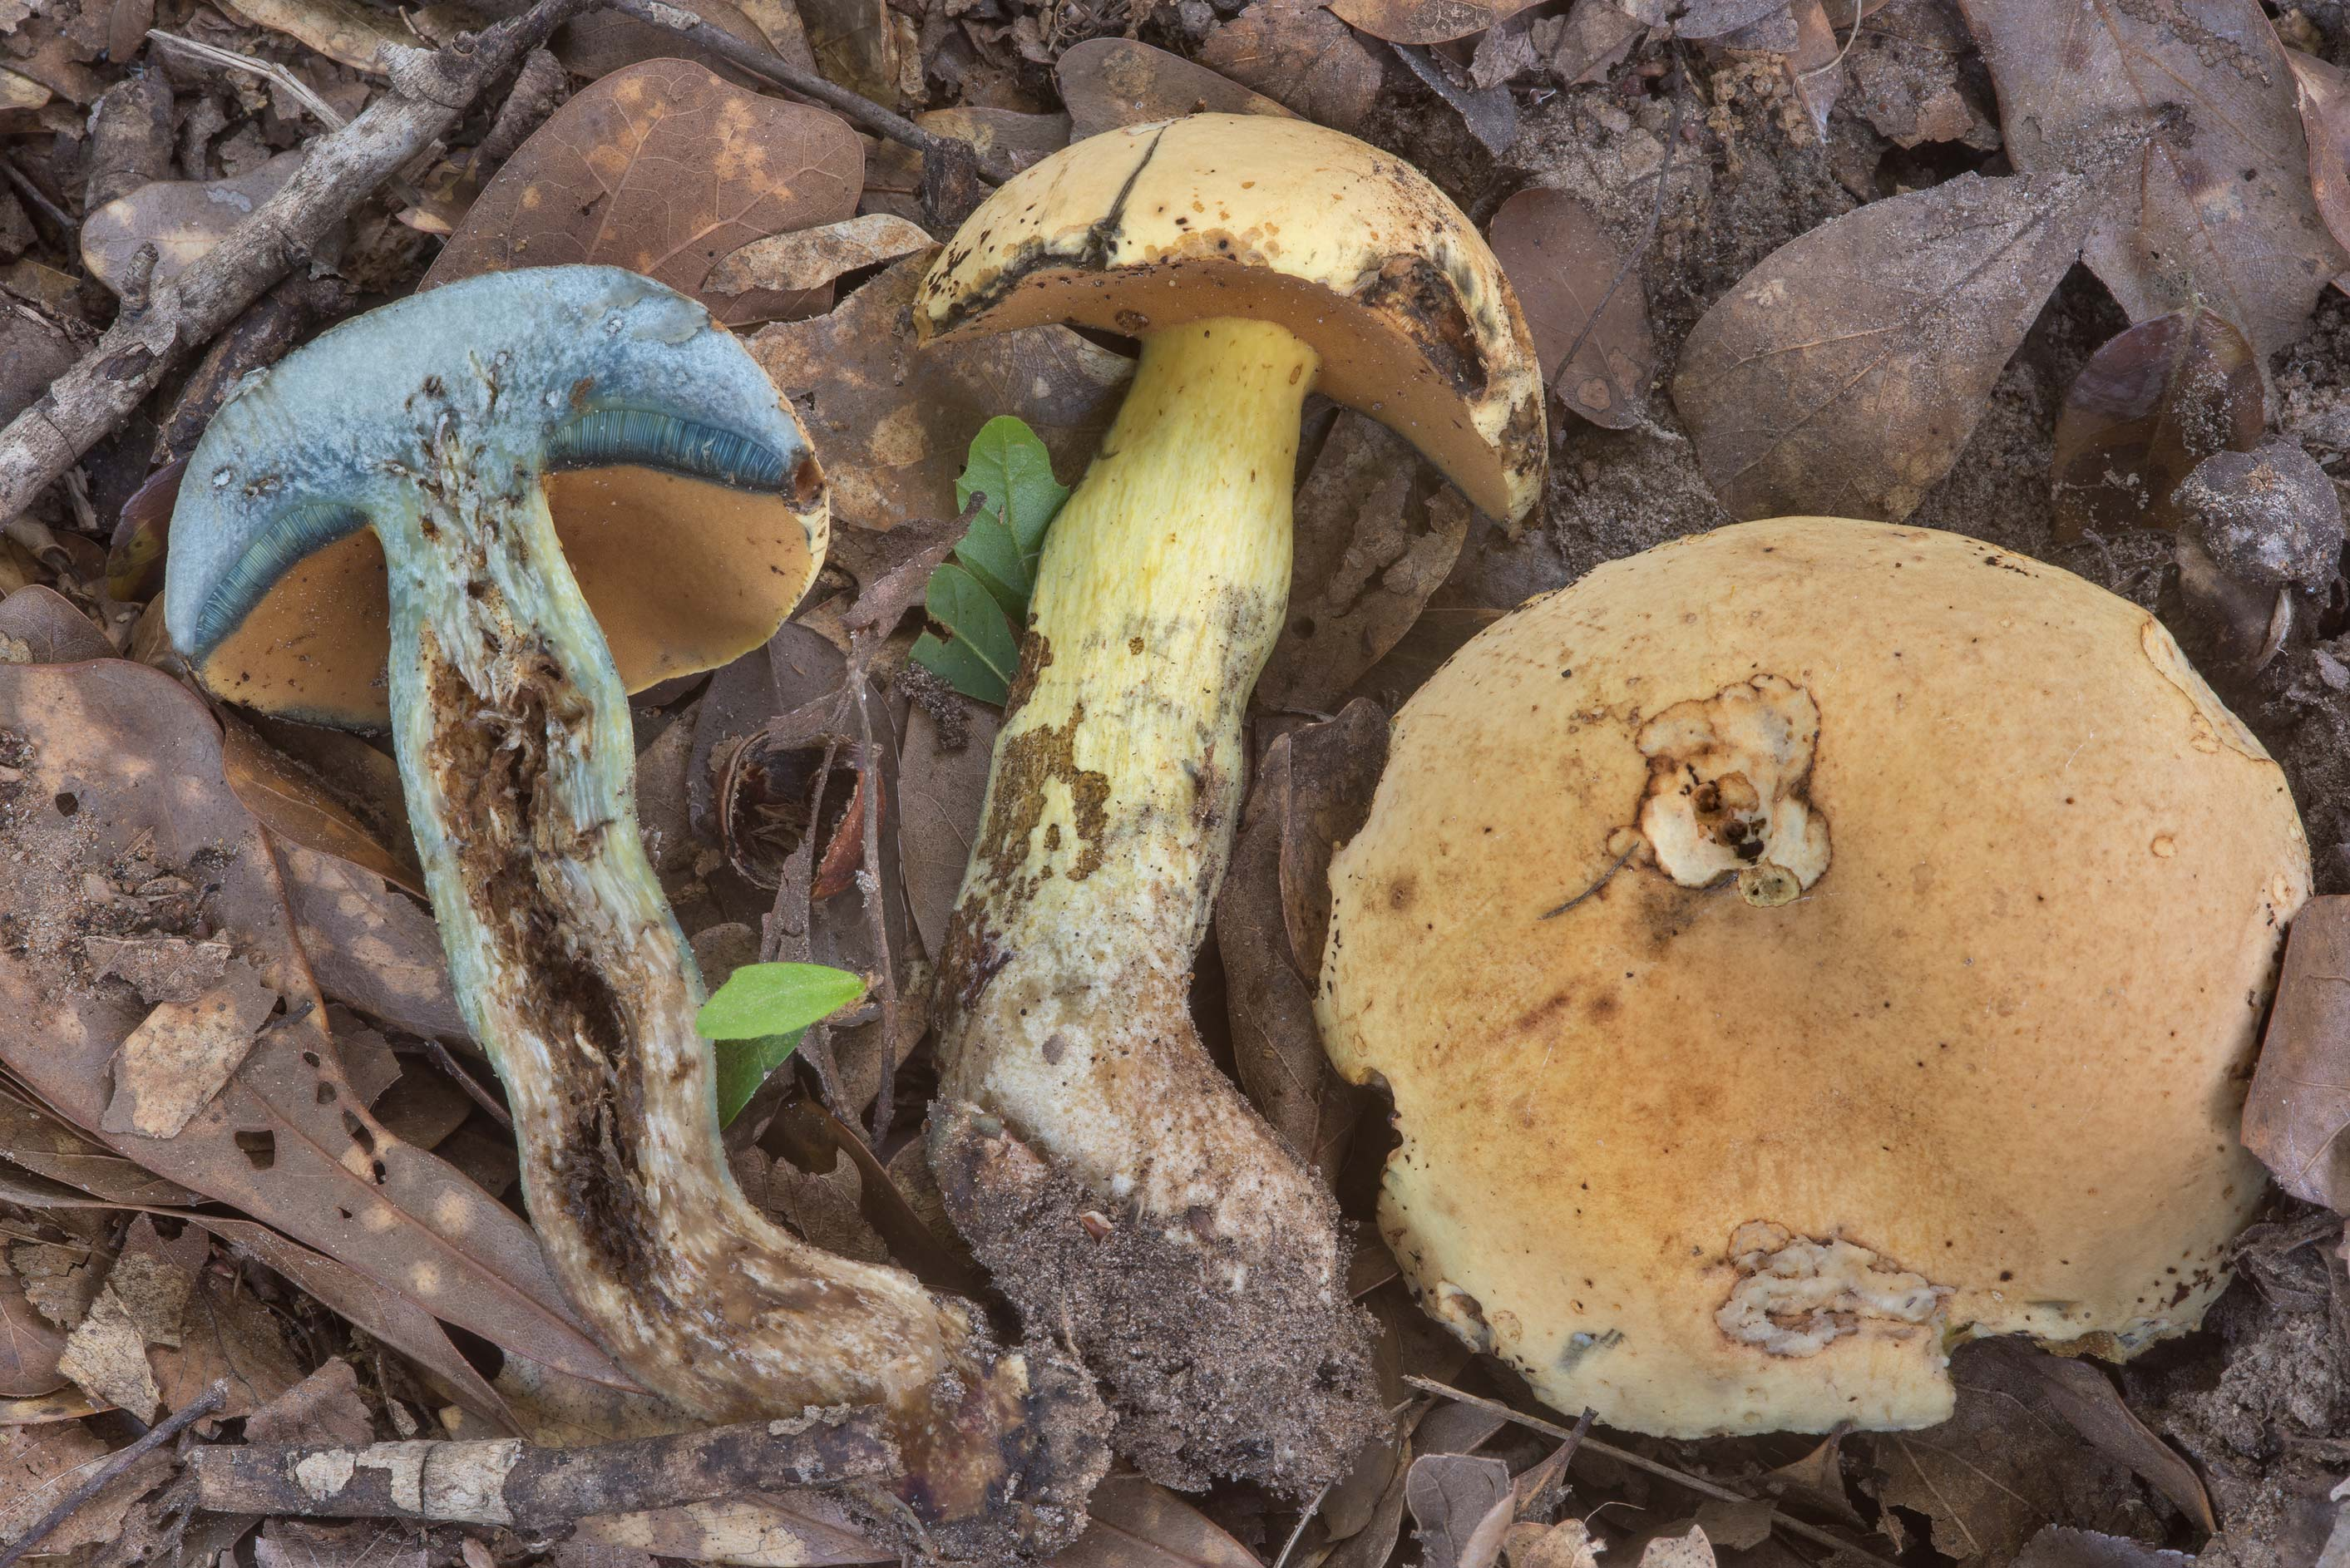 Dissected bolete mushrooms Neoboletus...Creek Park. College Station, Texas